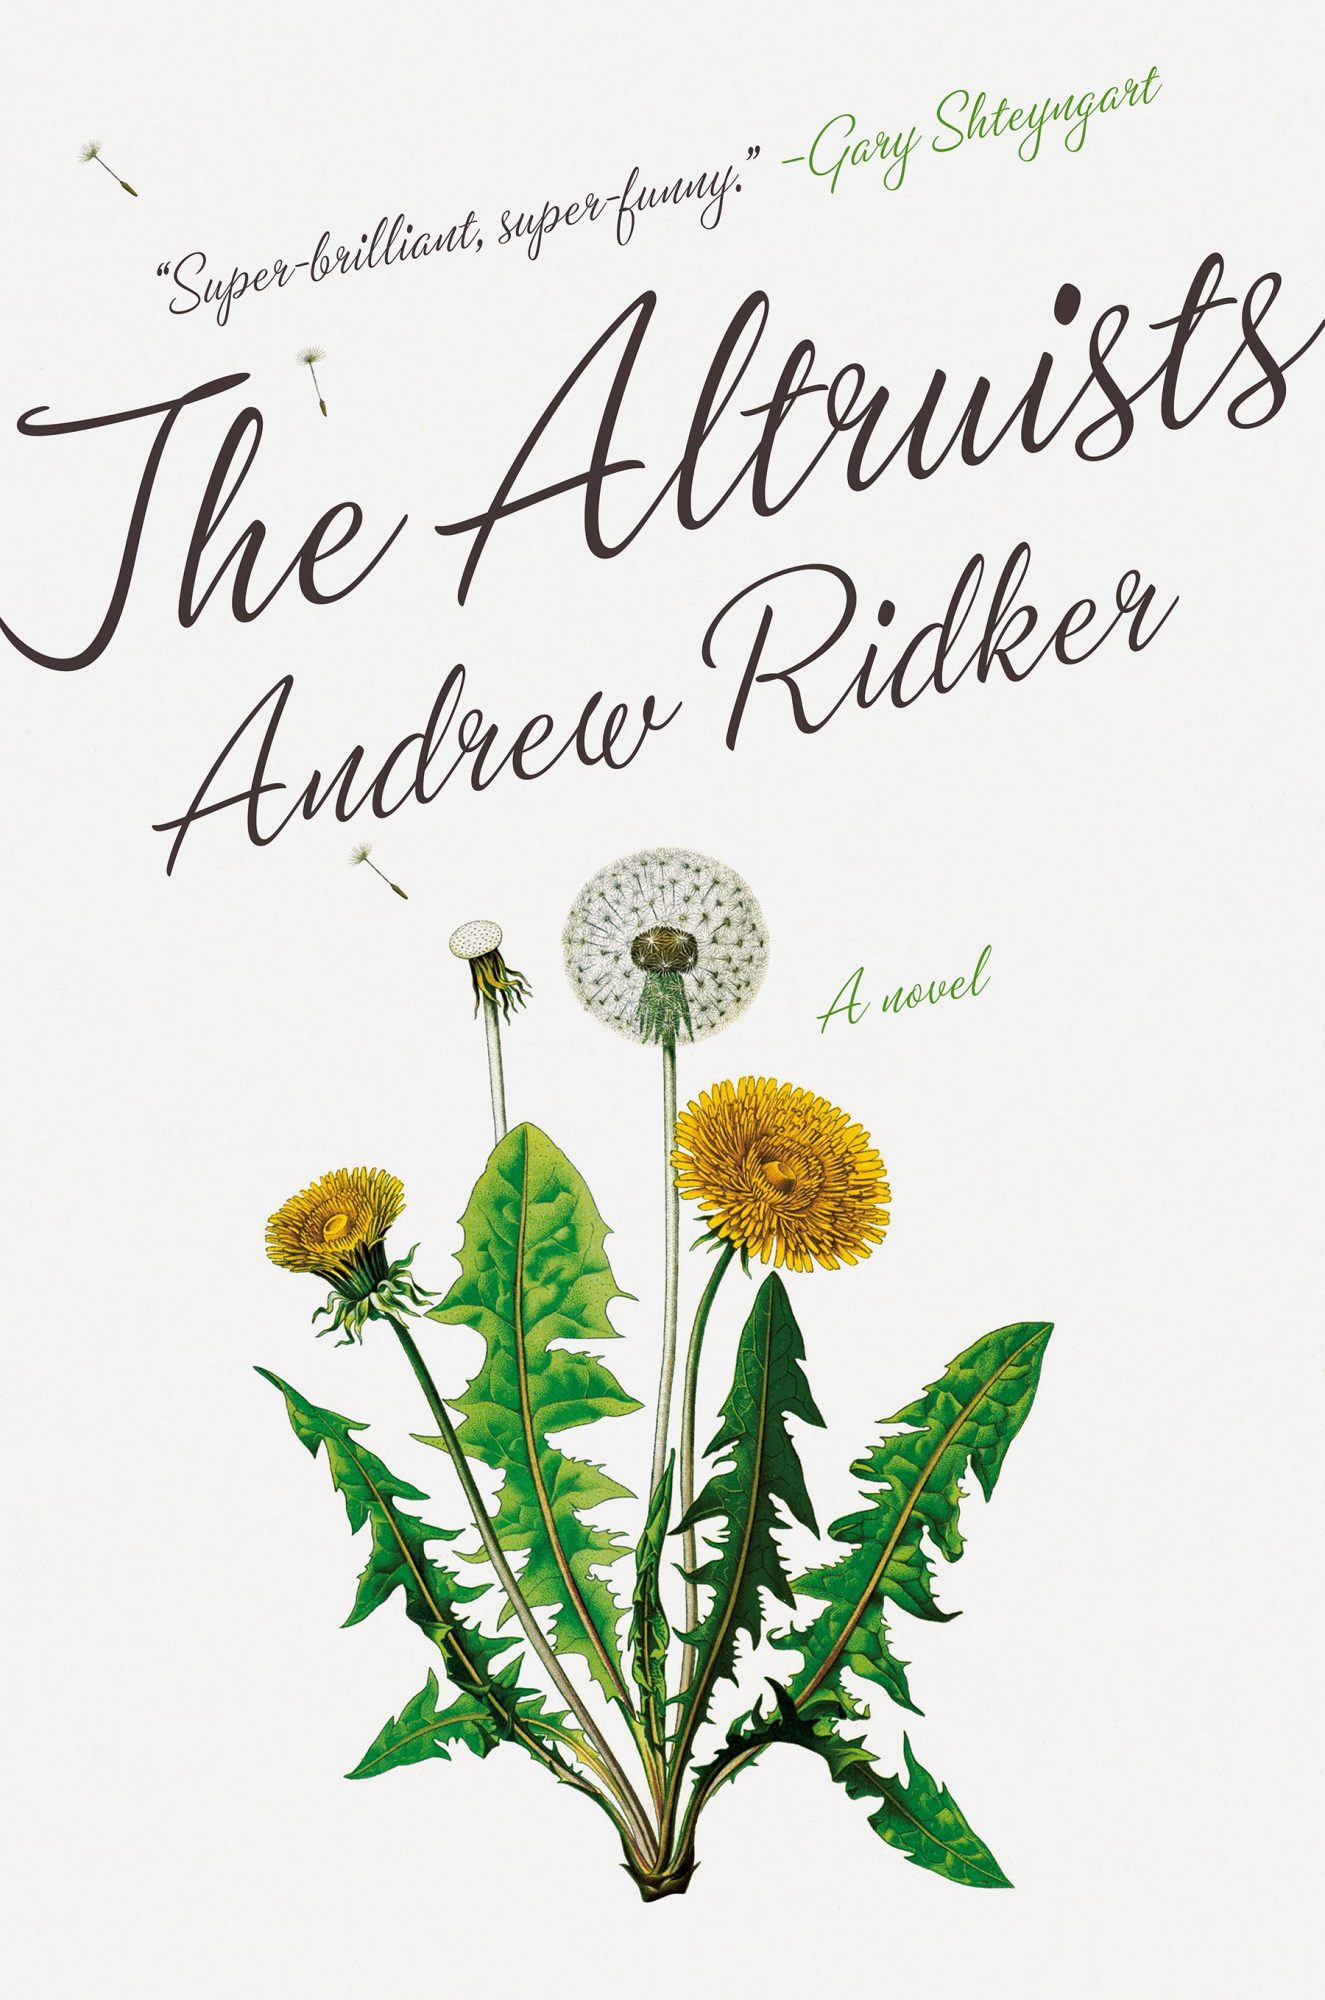 The Altruists, by Andrew Ridker